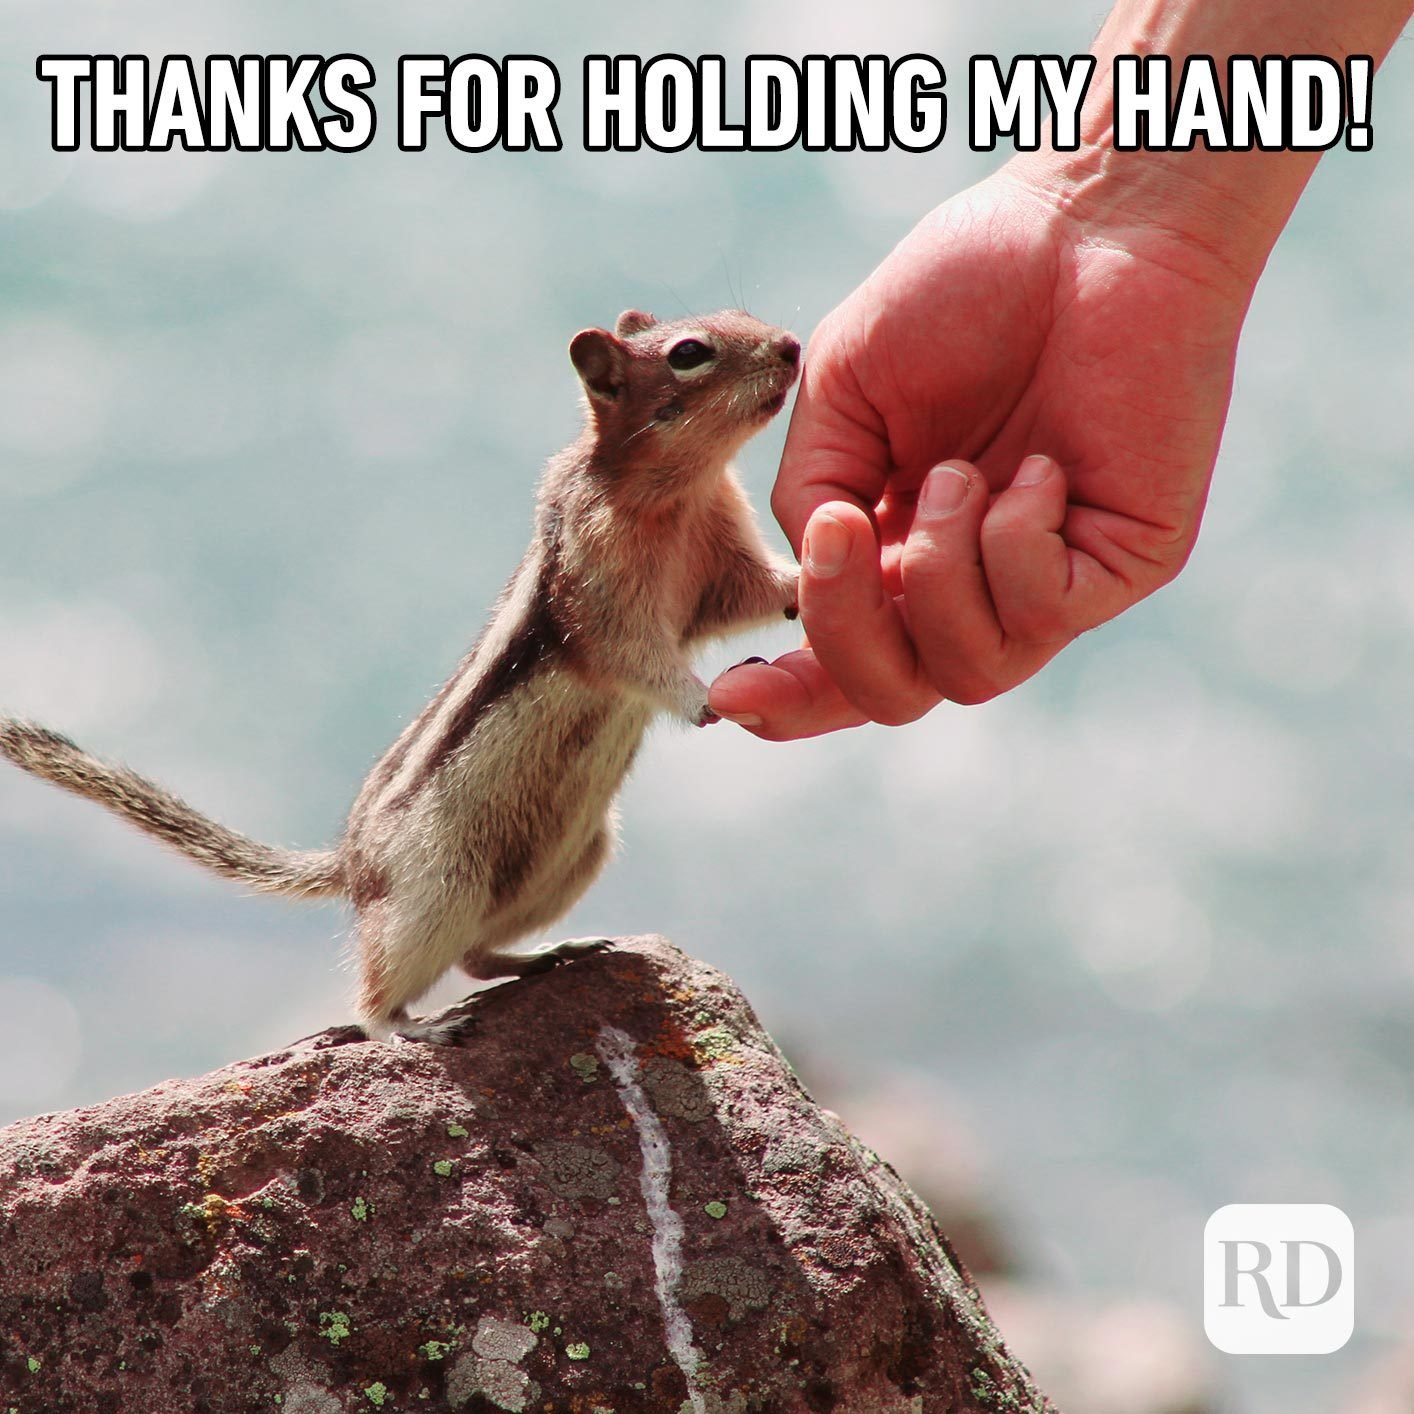 Man holding hands with chipmunk. Meme text: Thanks for holding my hand!